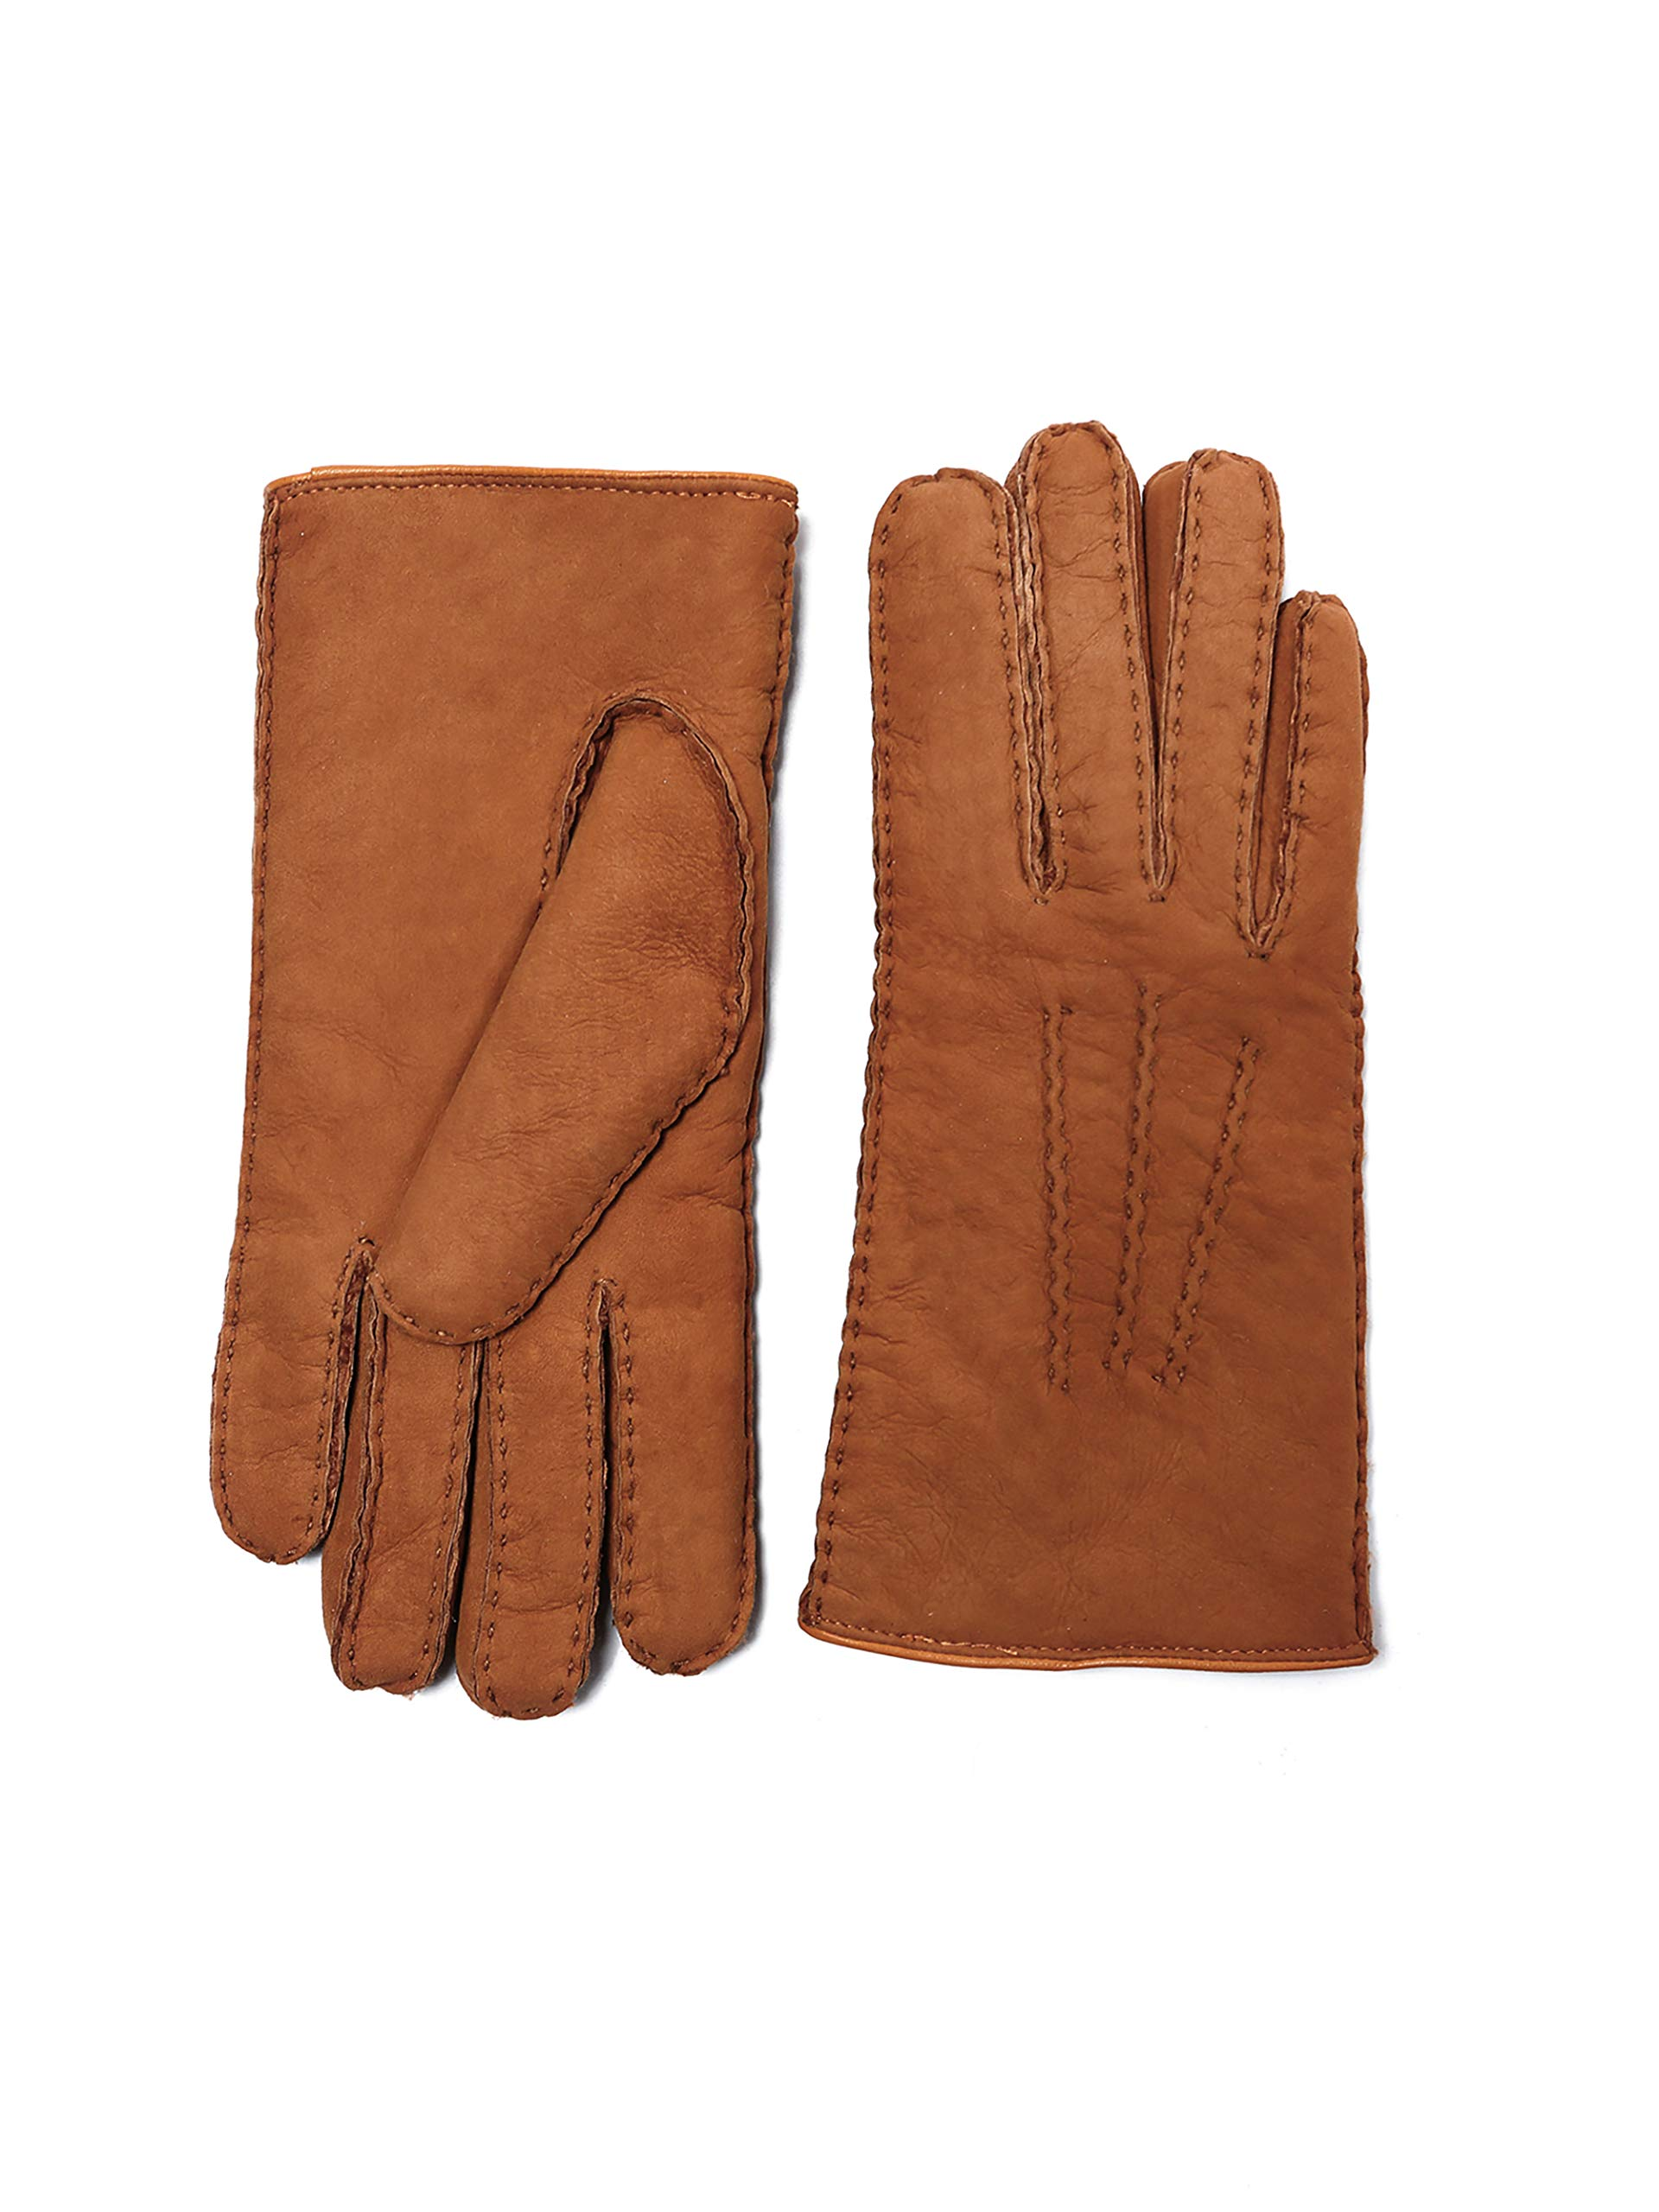 YISEVEN Women's Curly Shearling Leather Gloves Luxury New Zealand Lambskin Handmade Sheep Hair Fur Furry Lined Warm Sherpa Wool Lining Cuffs for Winter Cold Dress Driving Work Xmas Gifts, Orange S